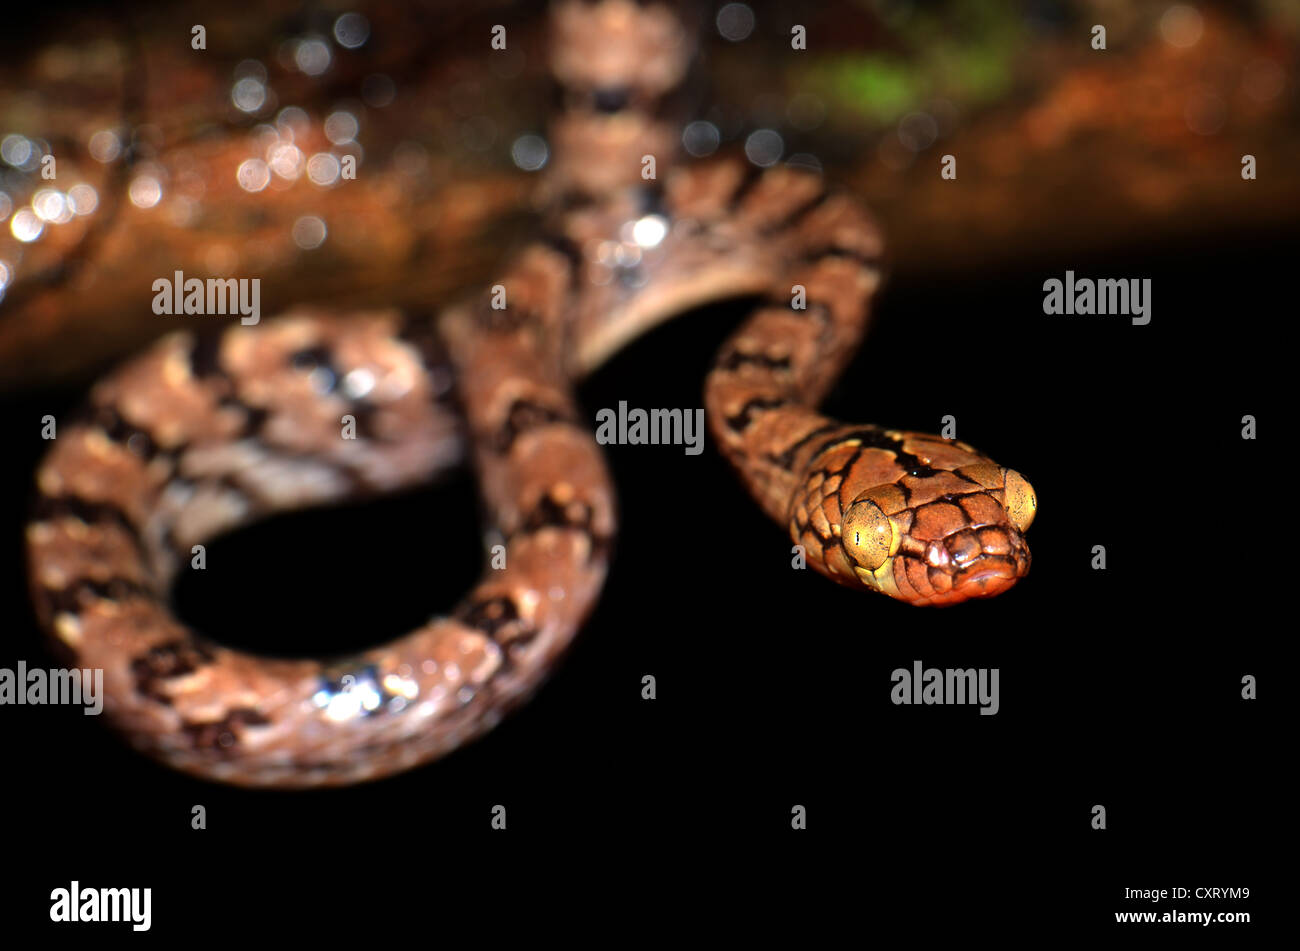 Madagascan arboreal snake (Stenophis sp.), in the rain forests of northern Madagascar, Africa - Stock Image